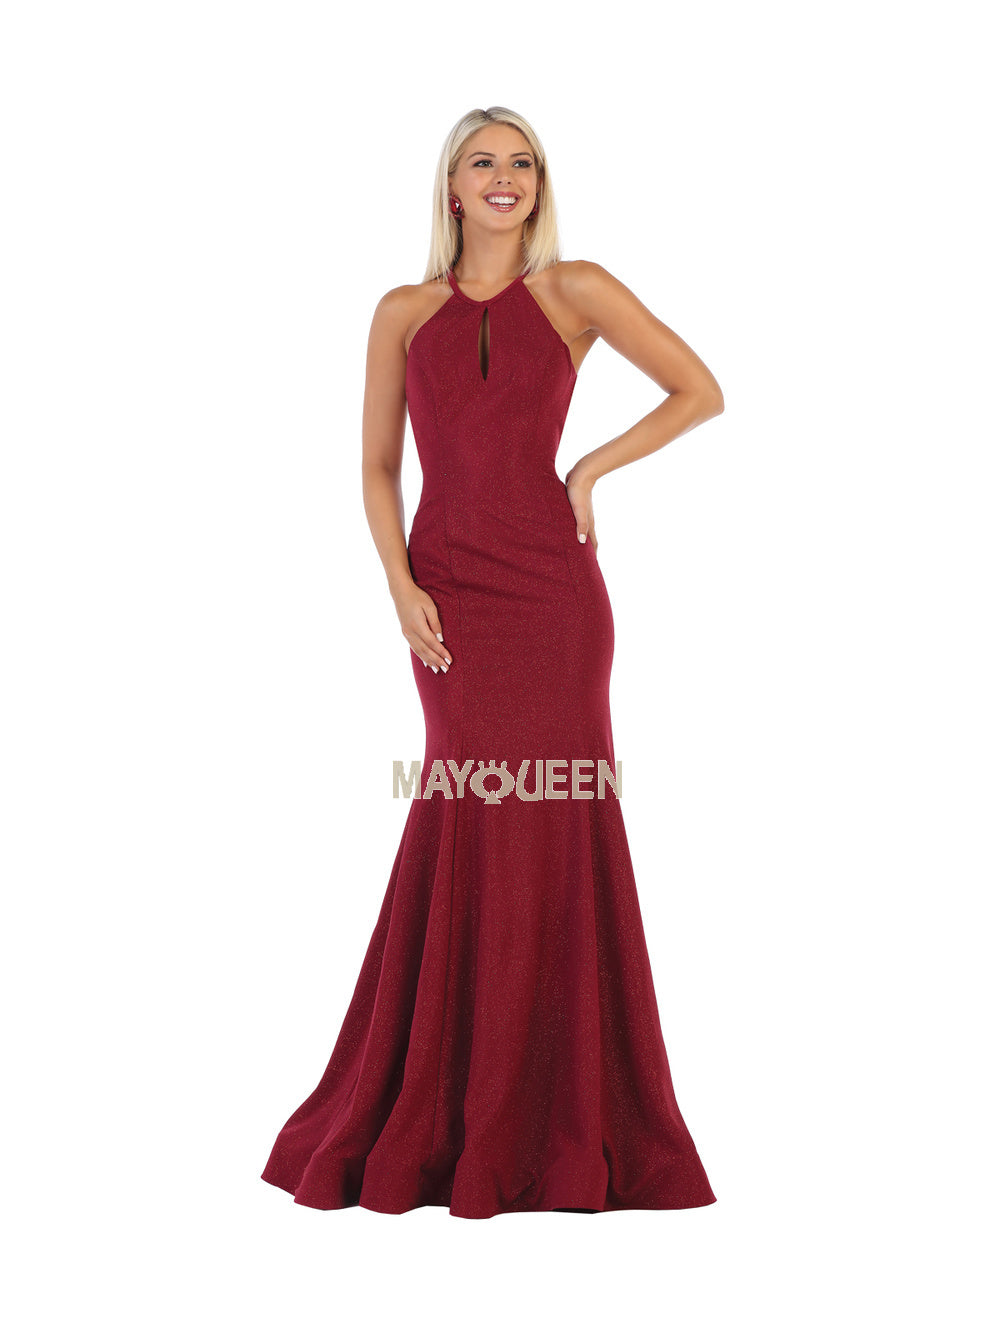 Mayqueen Size Chart E MQ 1603 - Fit & Flare Prom Gown with High Neck Strappy Back & Train - Diggz Prom